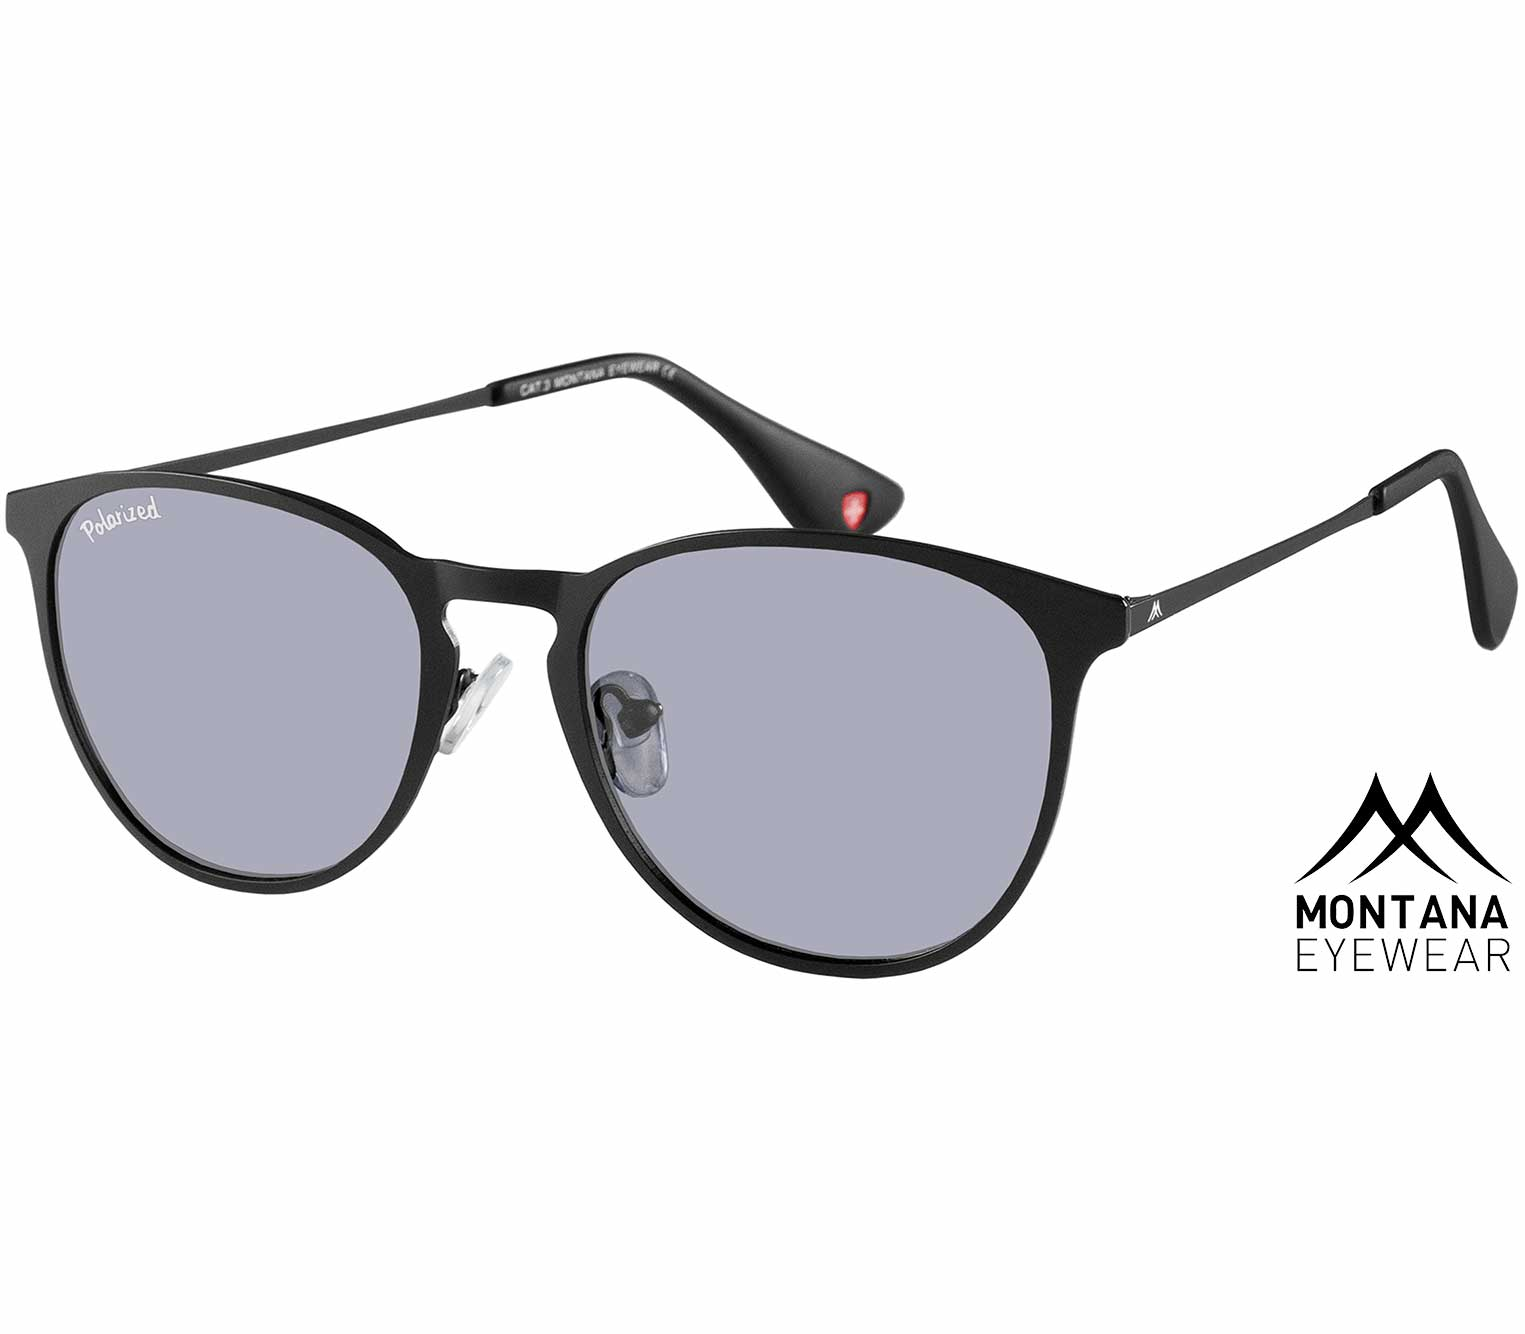 Main Image (Angle) - St Lucia (Black) Retro Sunglasses